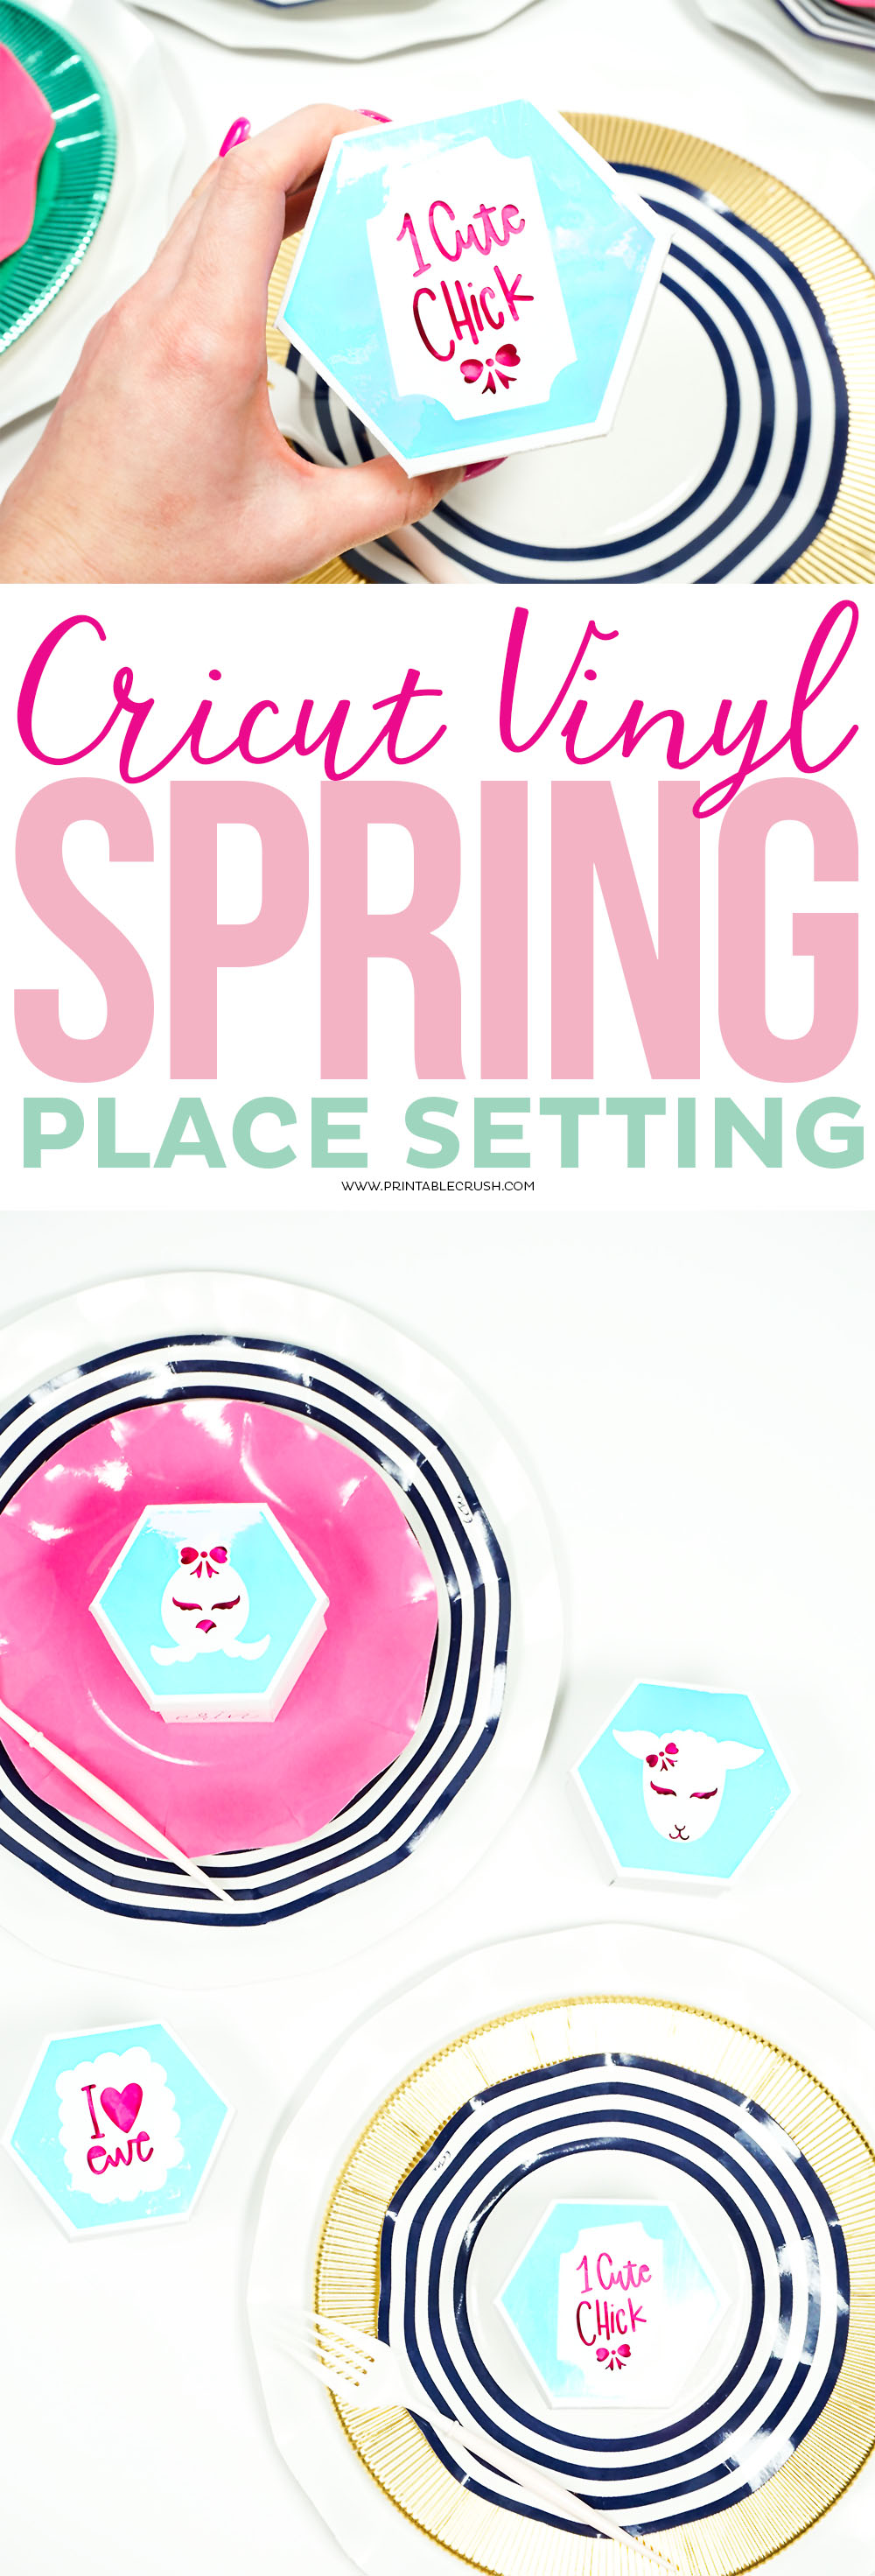 Cricut Vinyl Spring Place Setting closeup collage